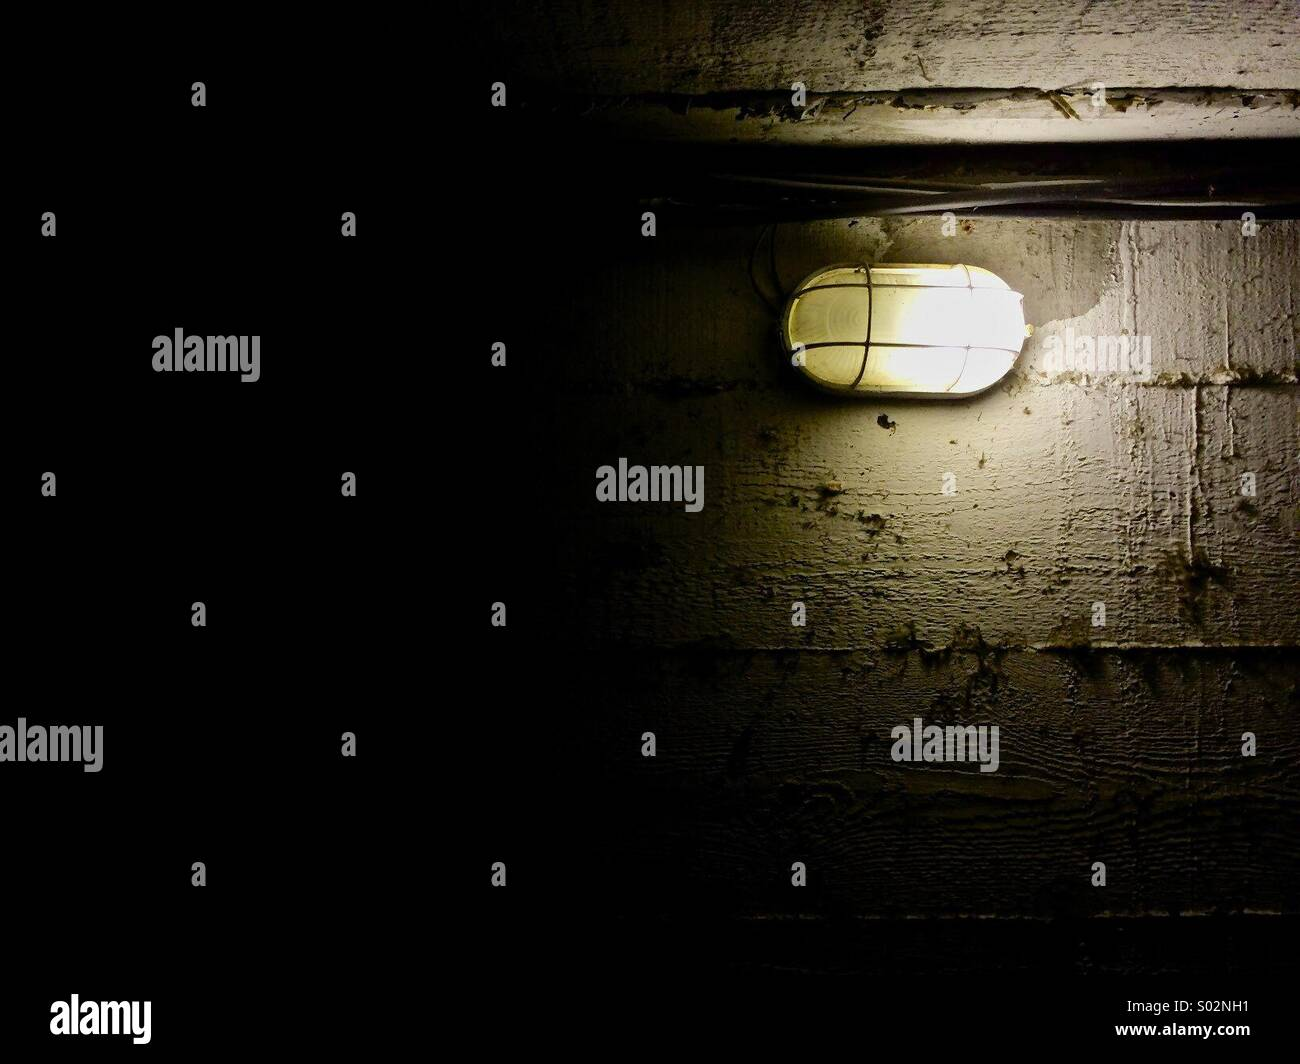 The Lamp - Stock Image